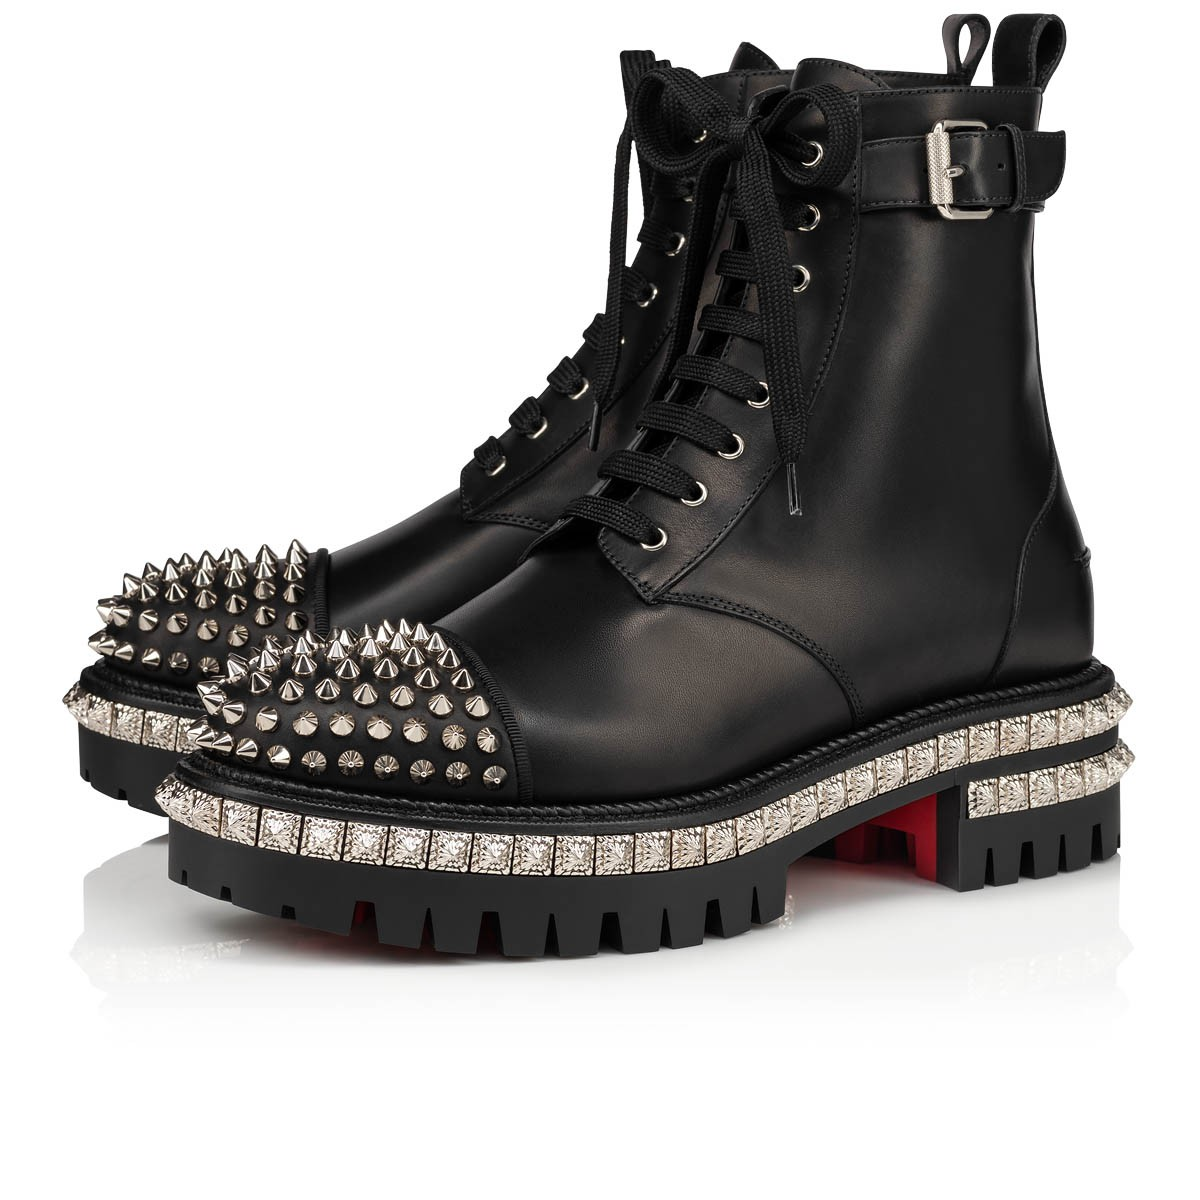 the best attitude fa3c1 9834a KING ST Black/Silver Leather - Women Shoes - Christian Louboutin